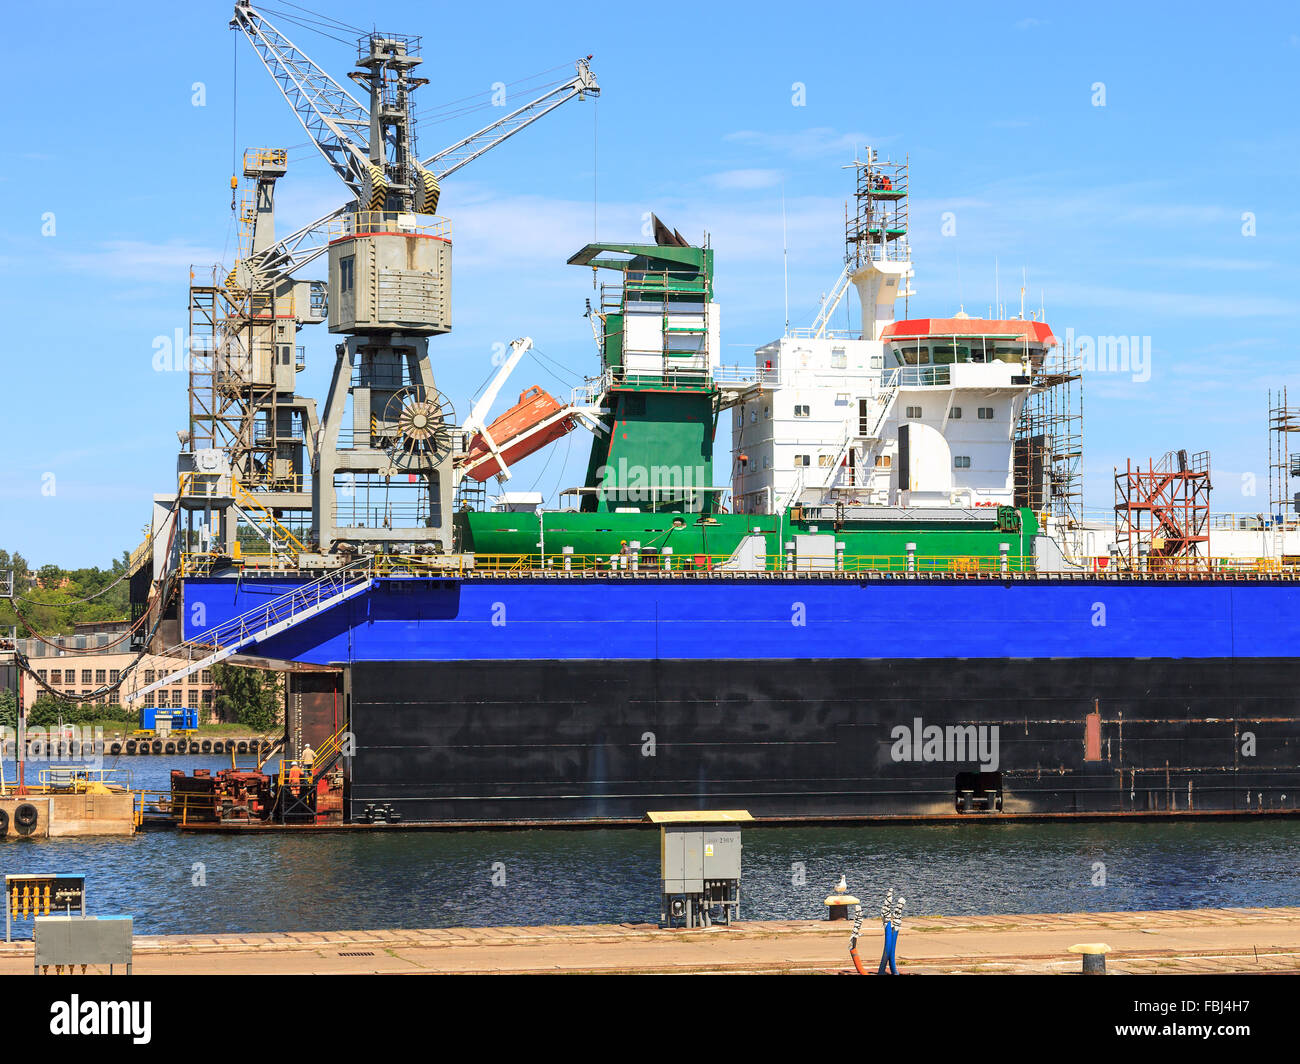 A big ship on the dry dock in a shipyard Gdynia, Poland. - Stock Image